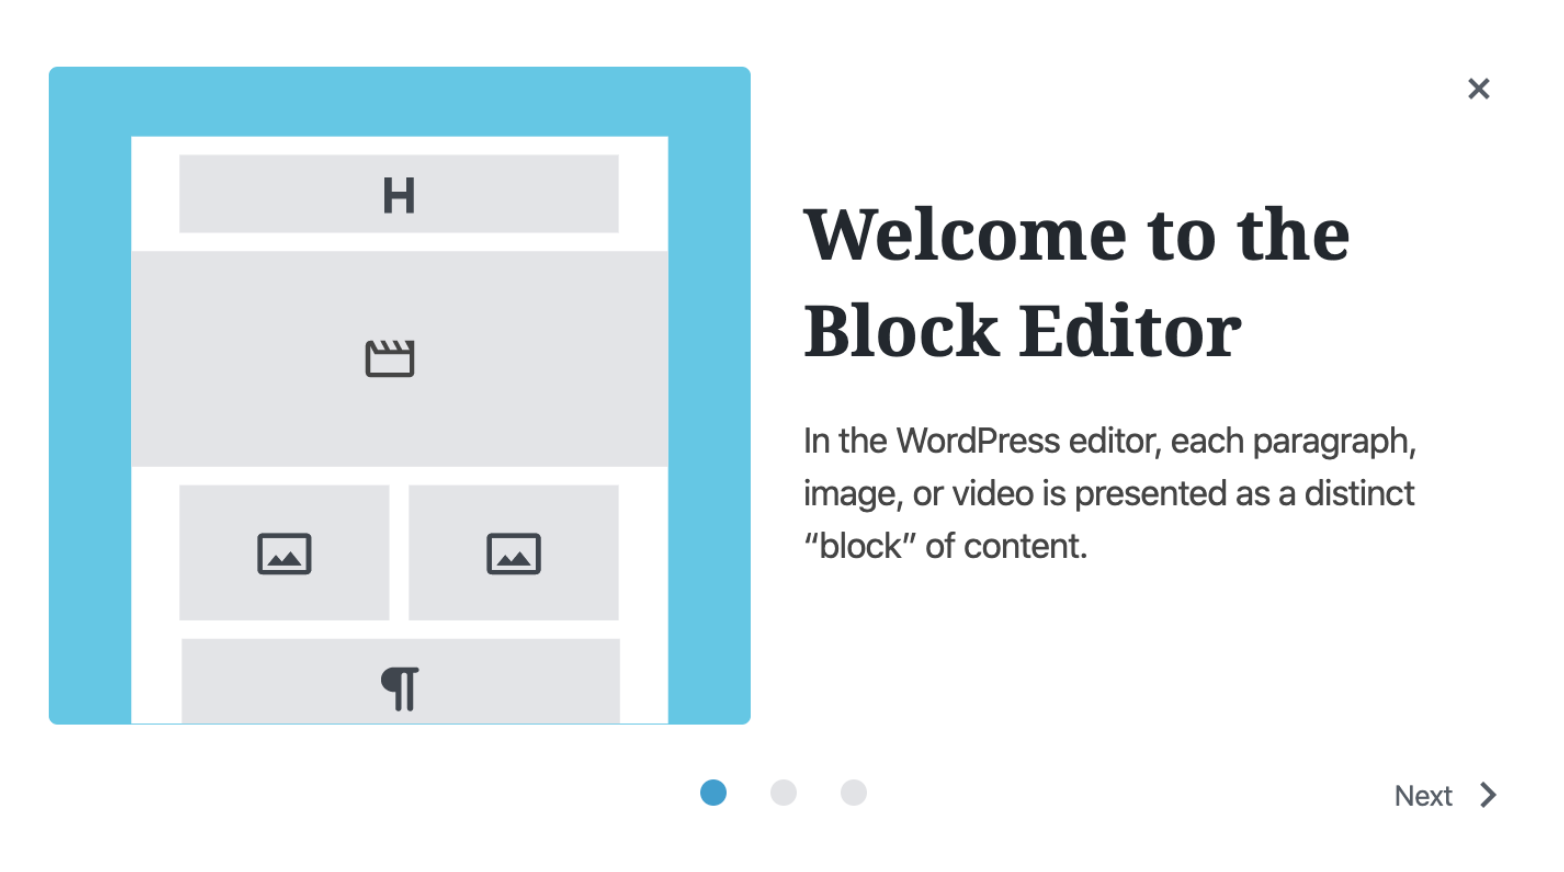 A welcome guide popup for the Gutenberg editor in WordPress 5.4